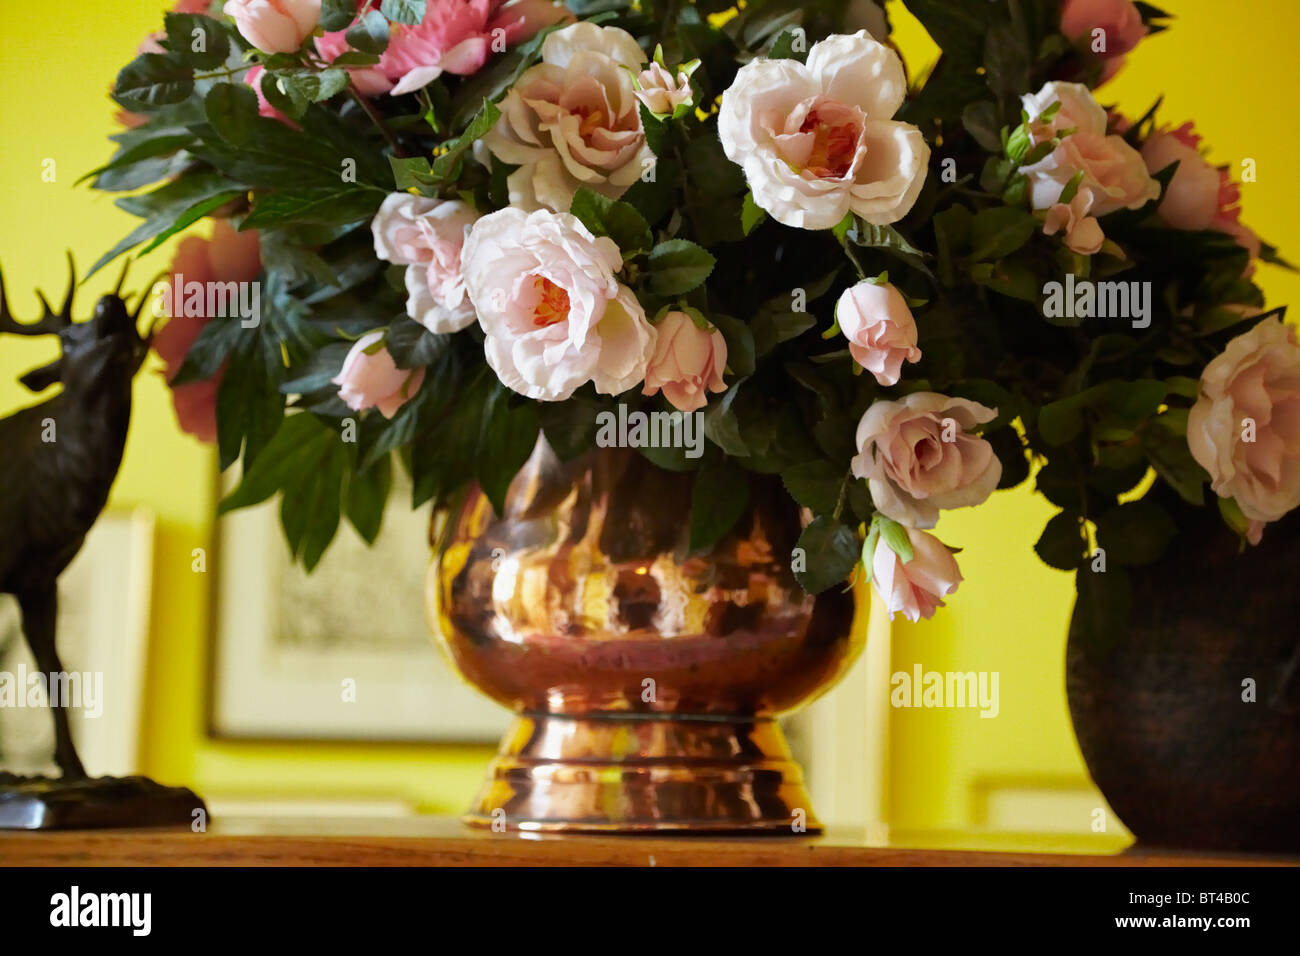 Still life with a bouquet of peony fake flowers in an old copper still life with a bouquet of peony fake flowers in an old copper vase on a shelf indoor interior shot izmirmasajfo